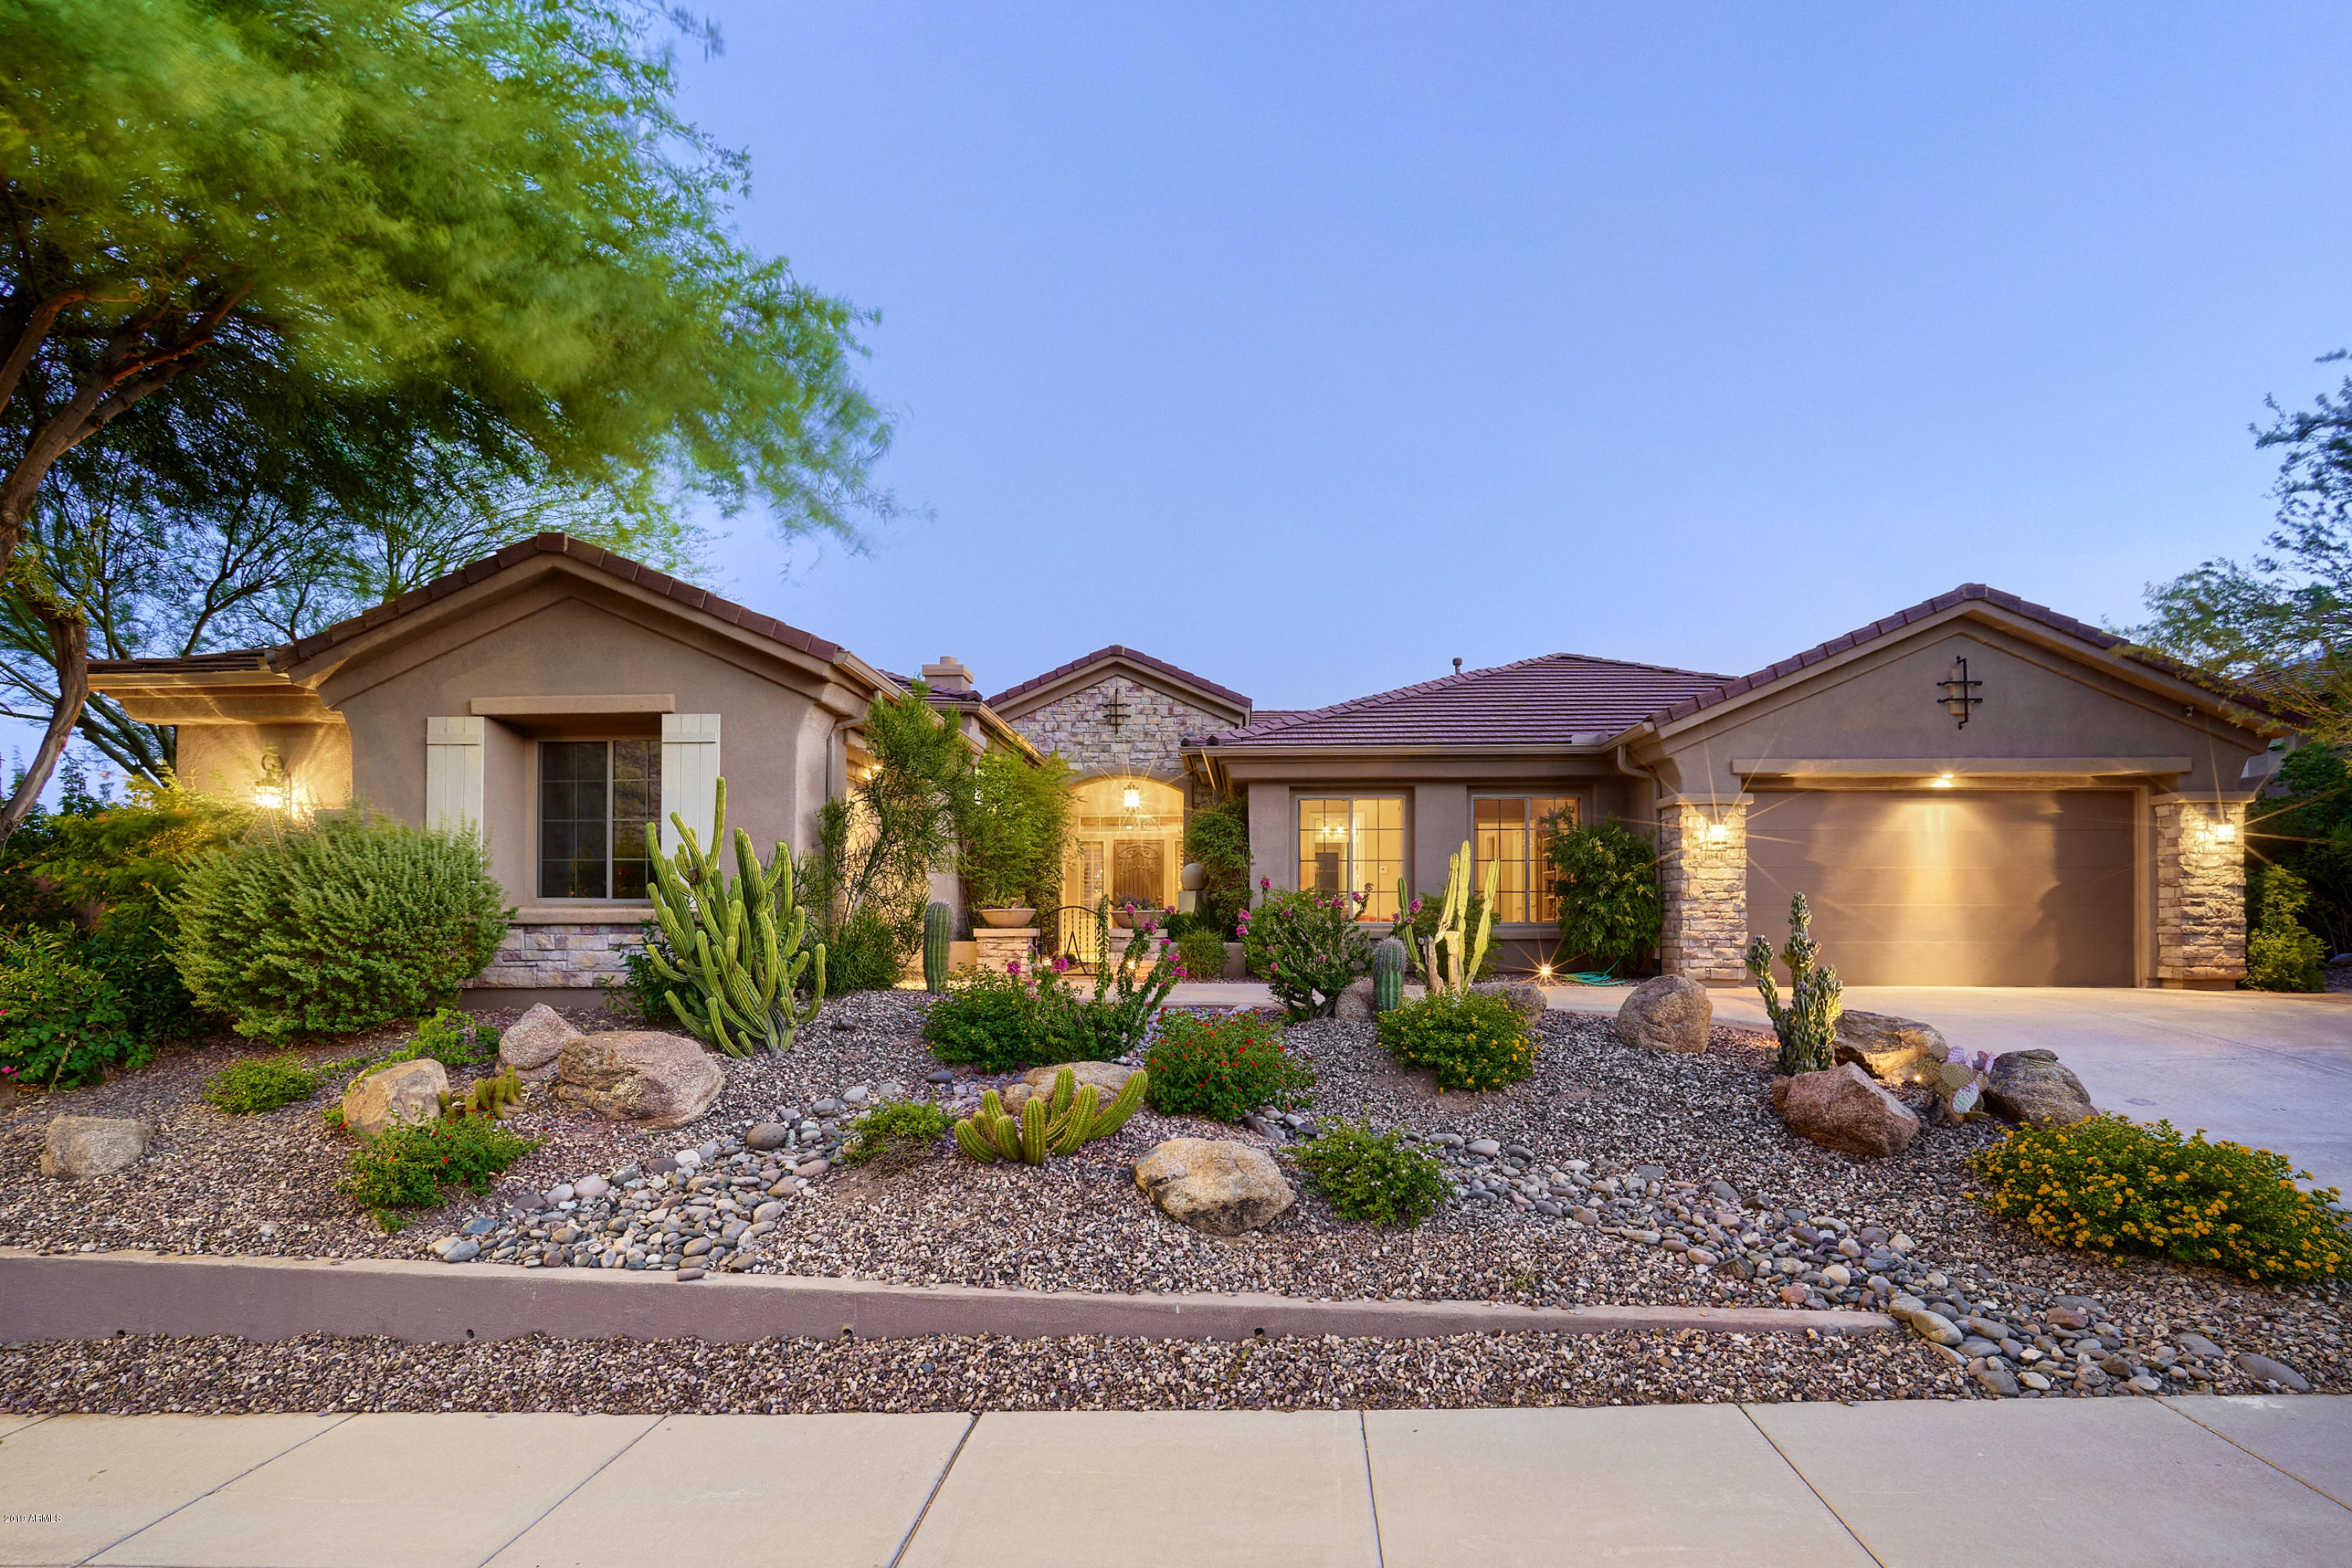 1641 W SILVER PINE Drive, Anthem, Arizona